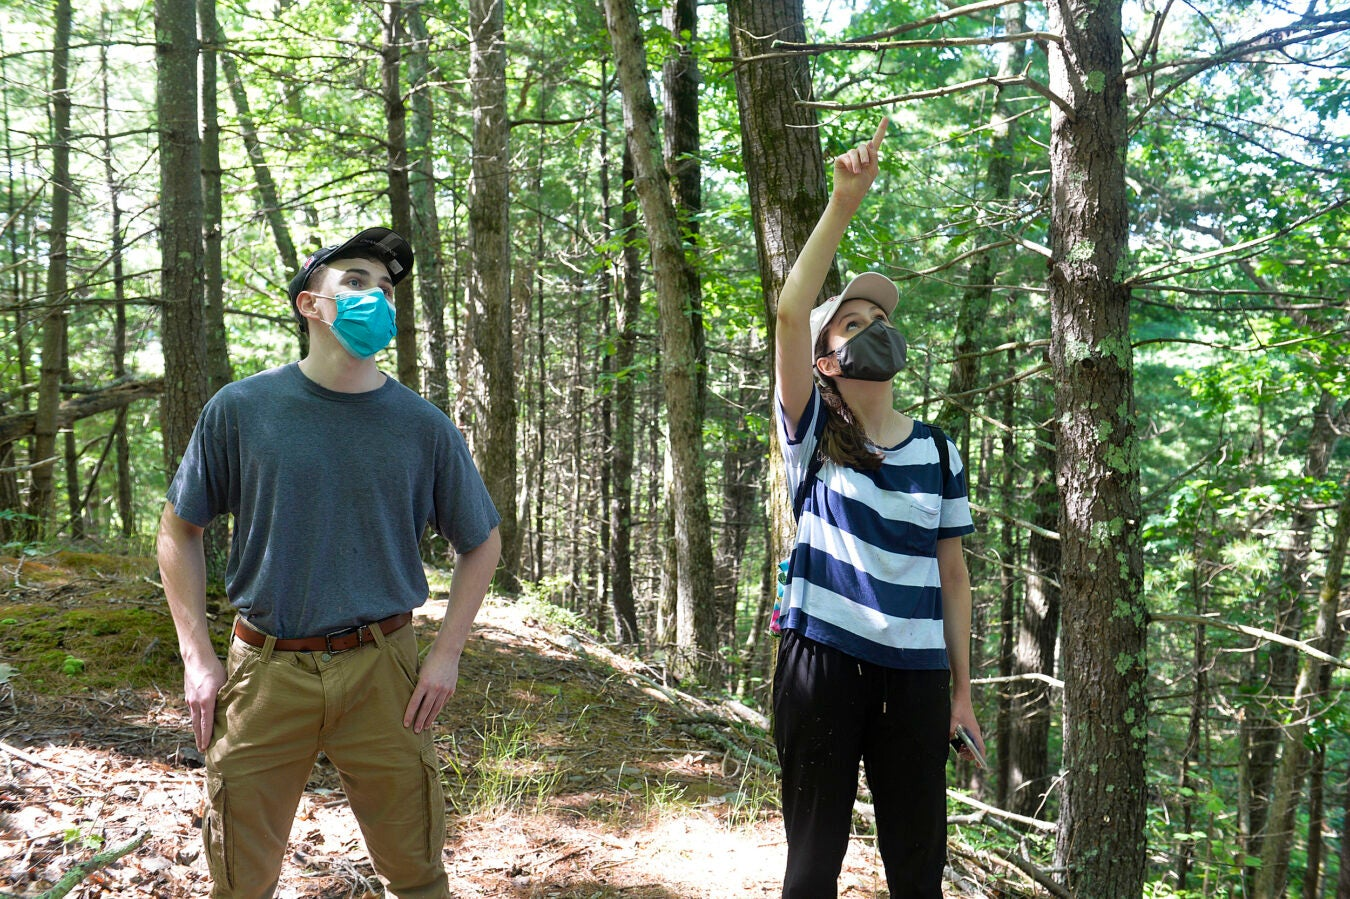 Kate Guerin with her brother in the woods.